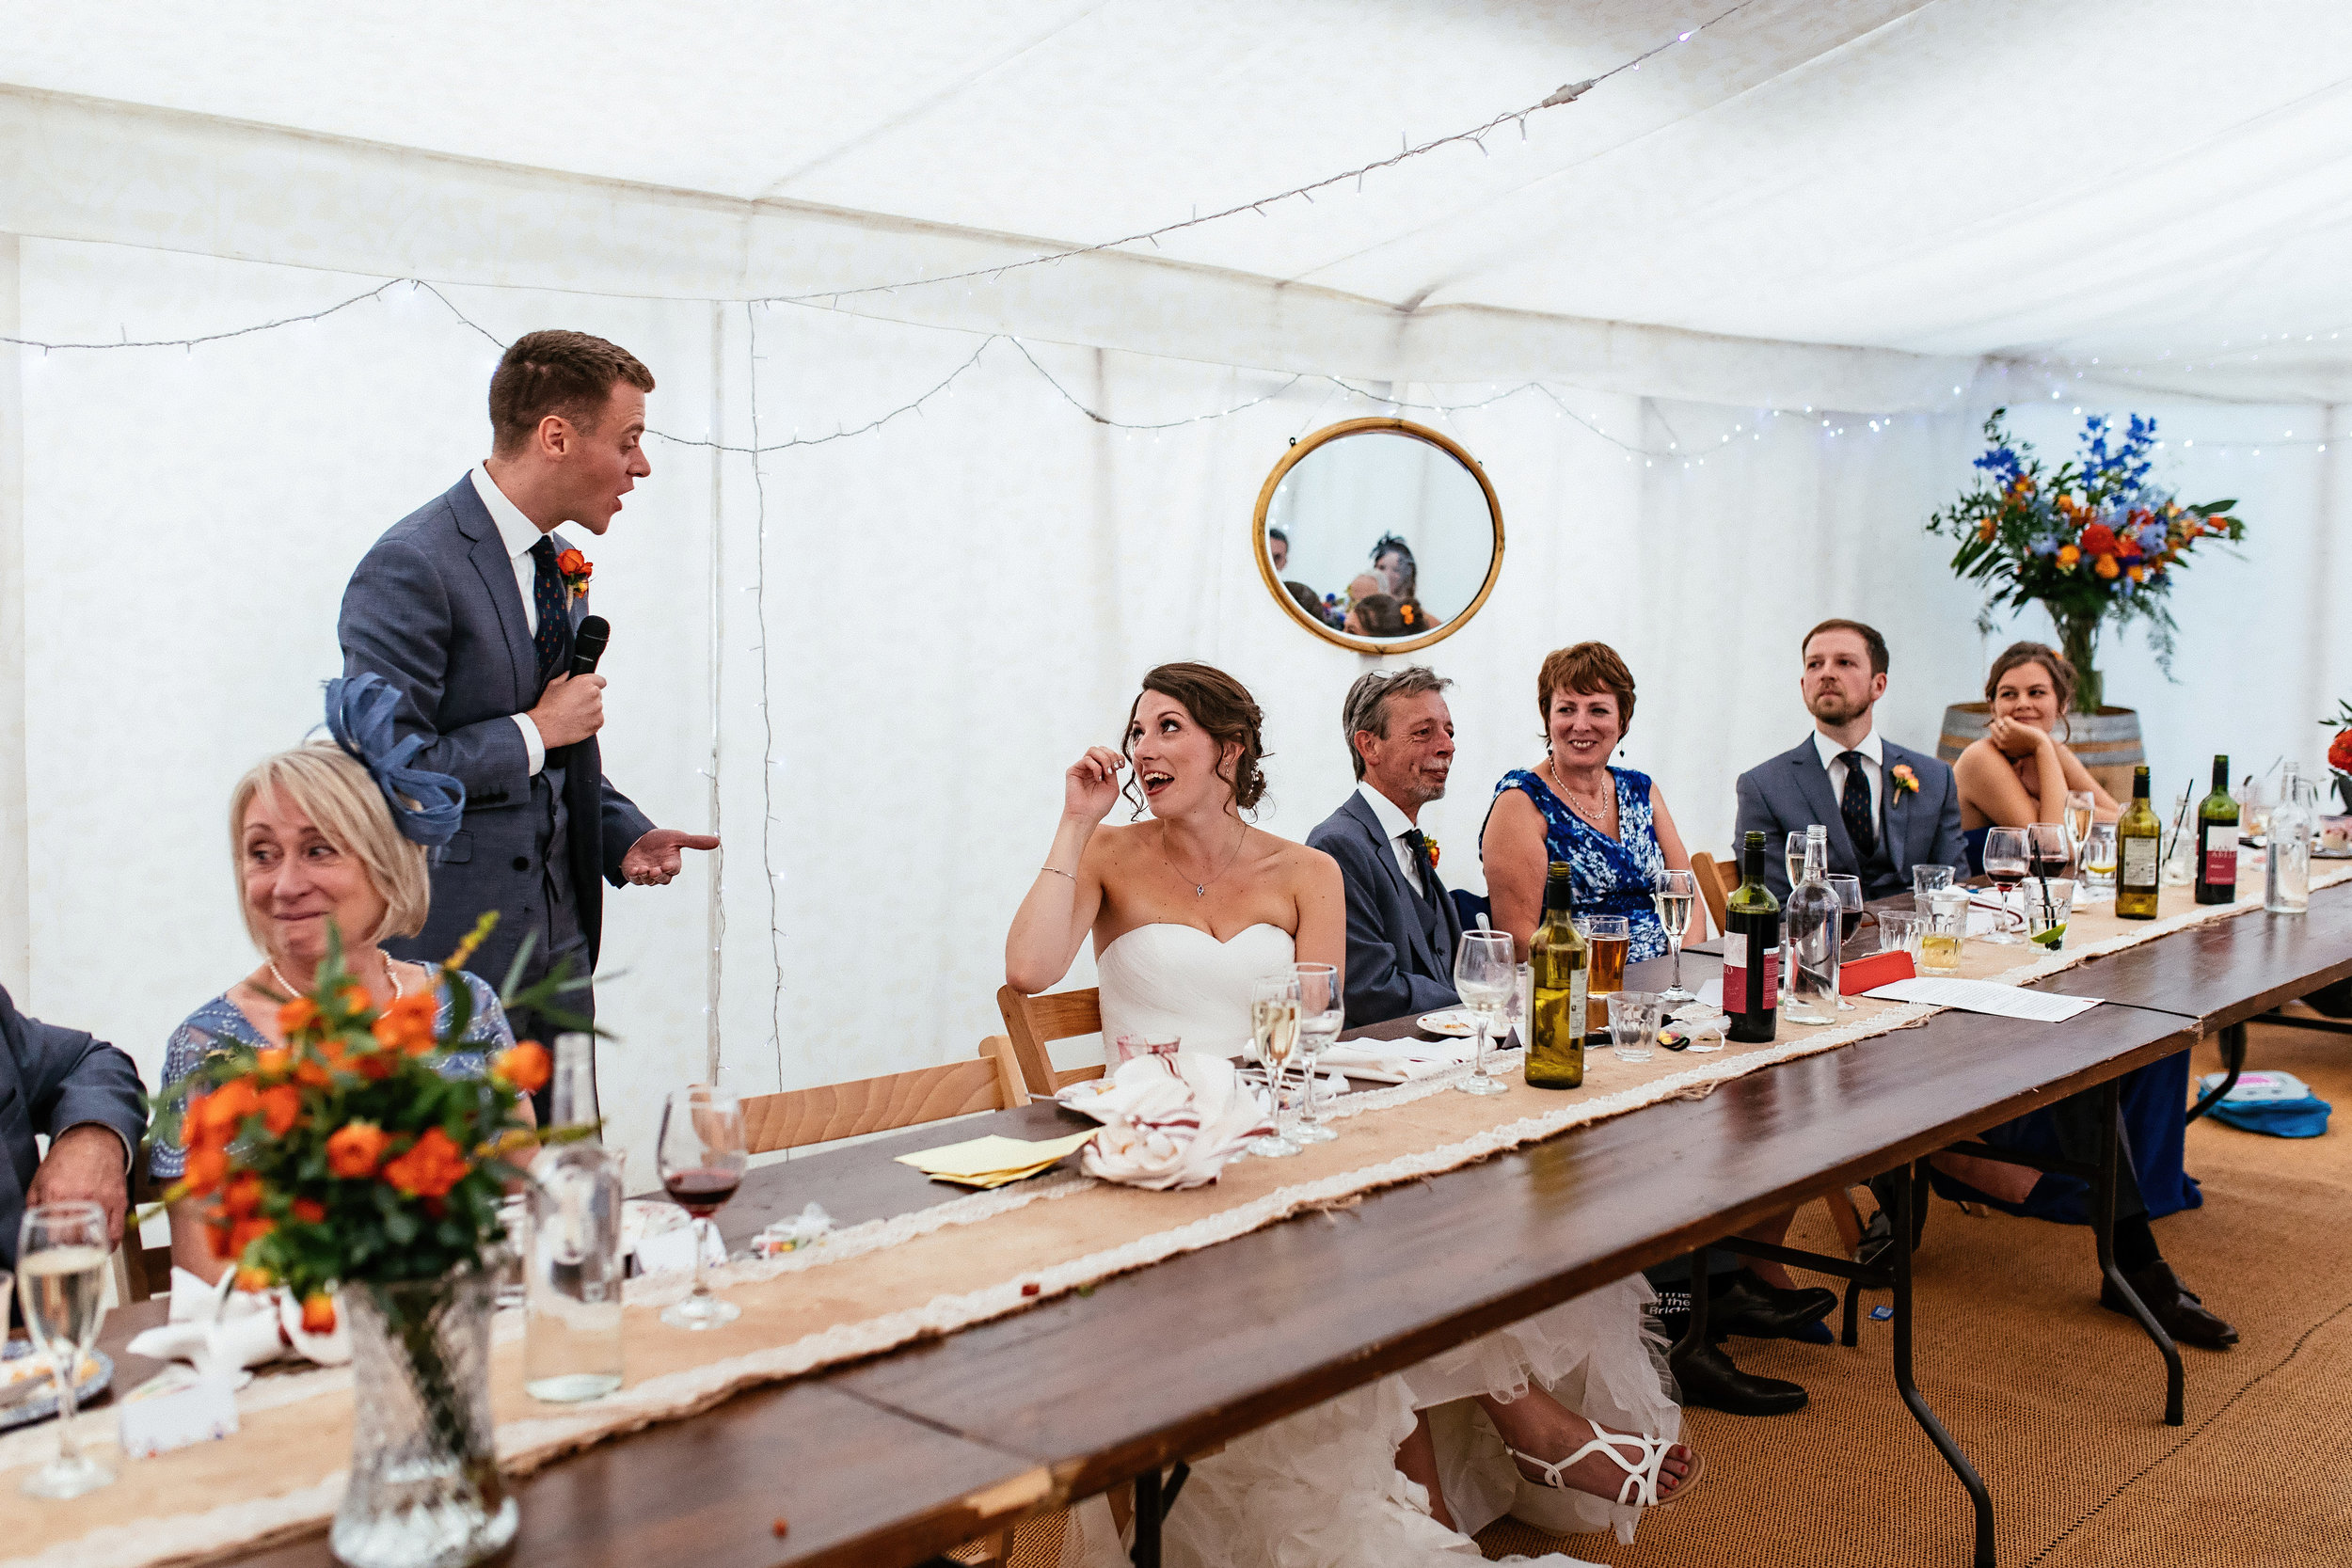 Trinity College Oxford University Wedding Photographer 0097.jpg